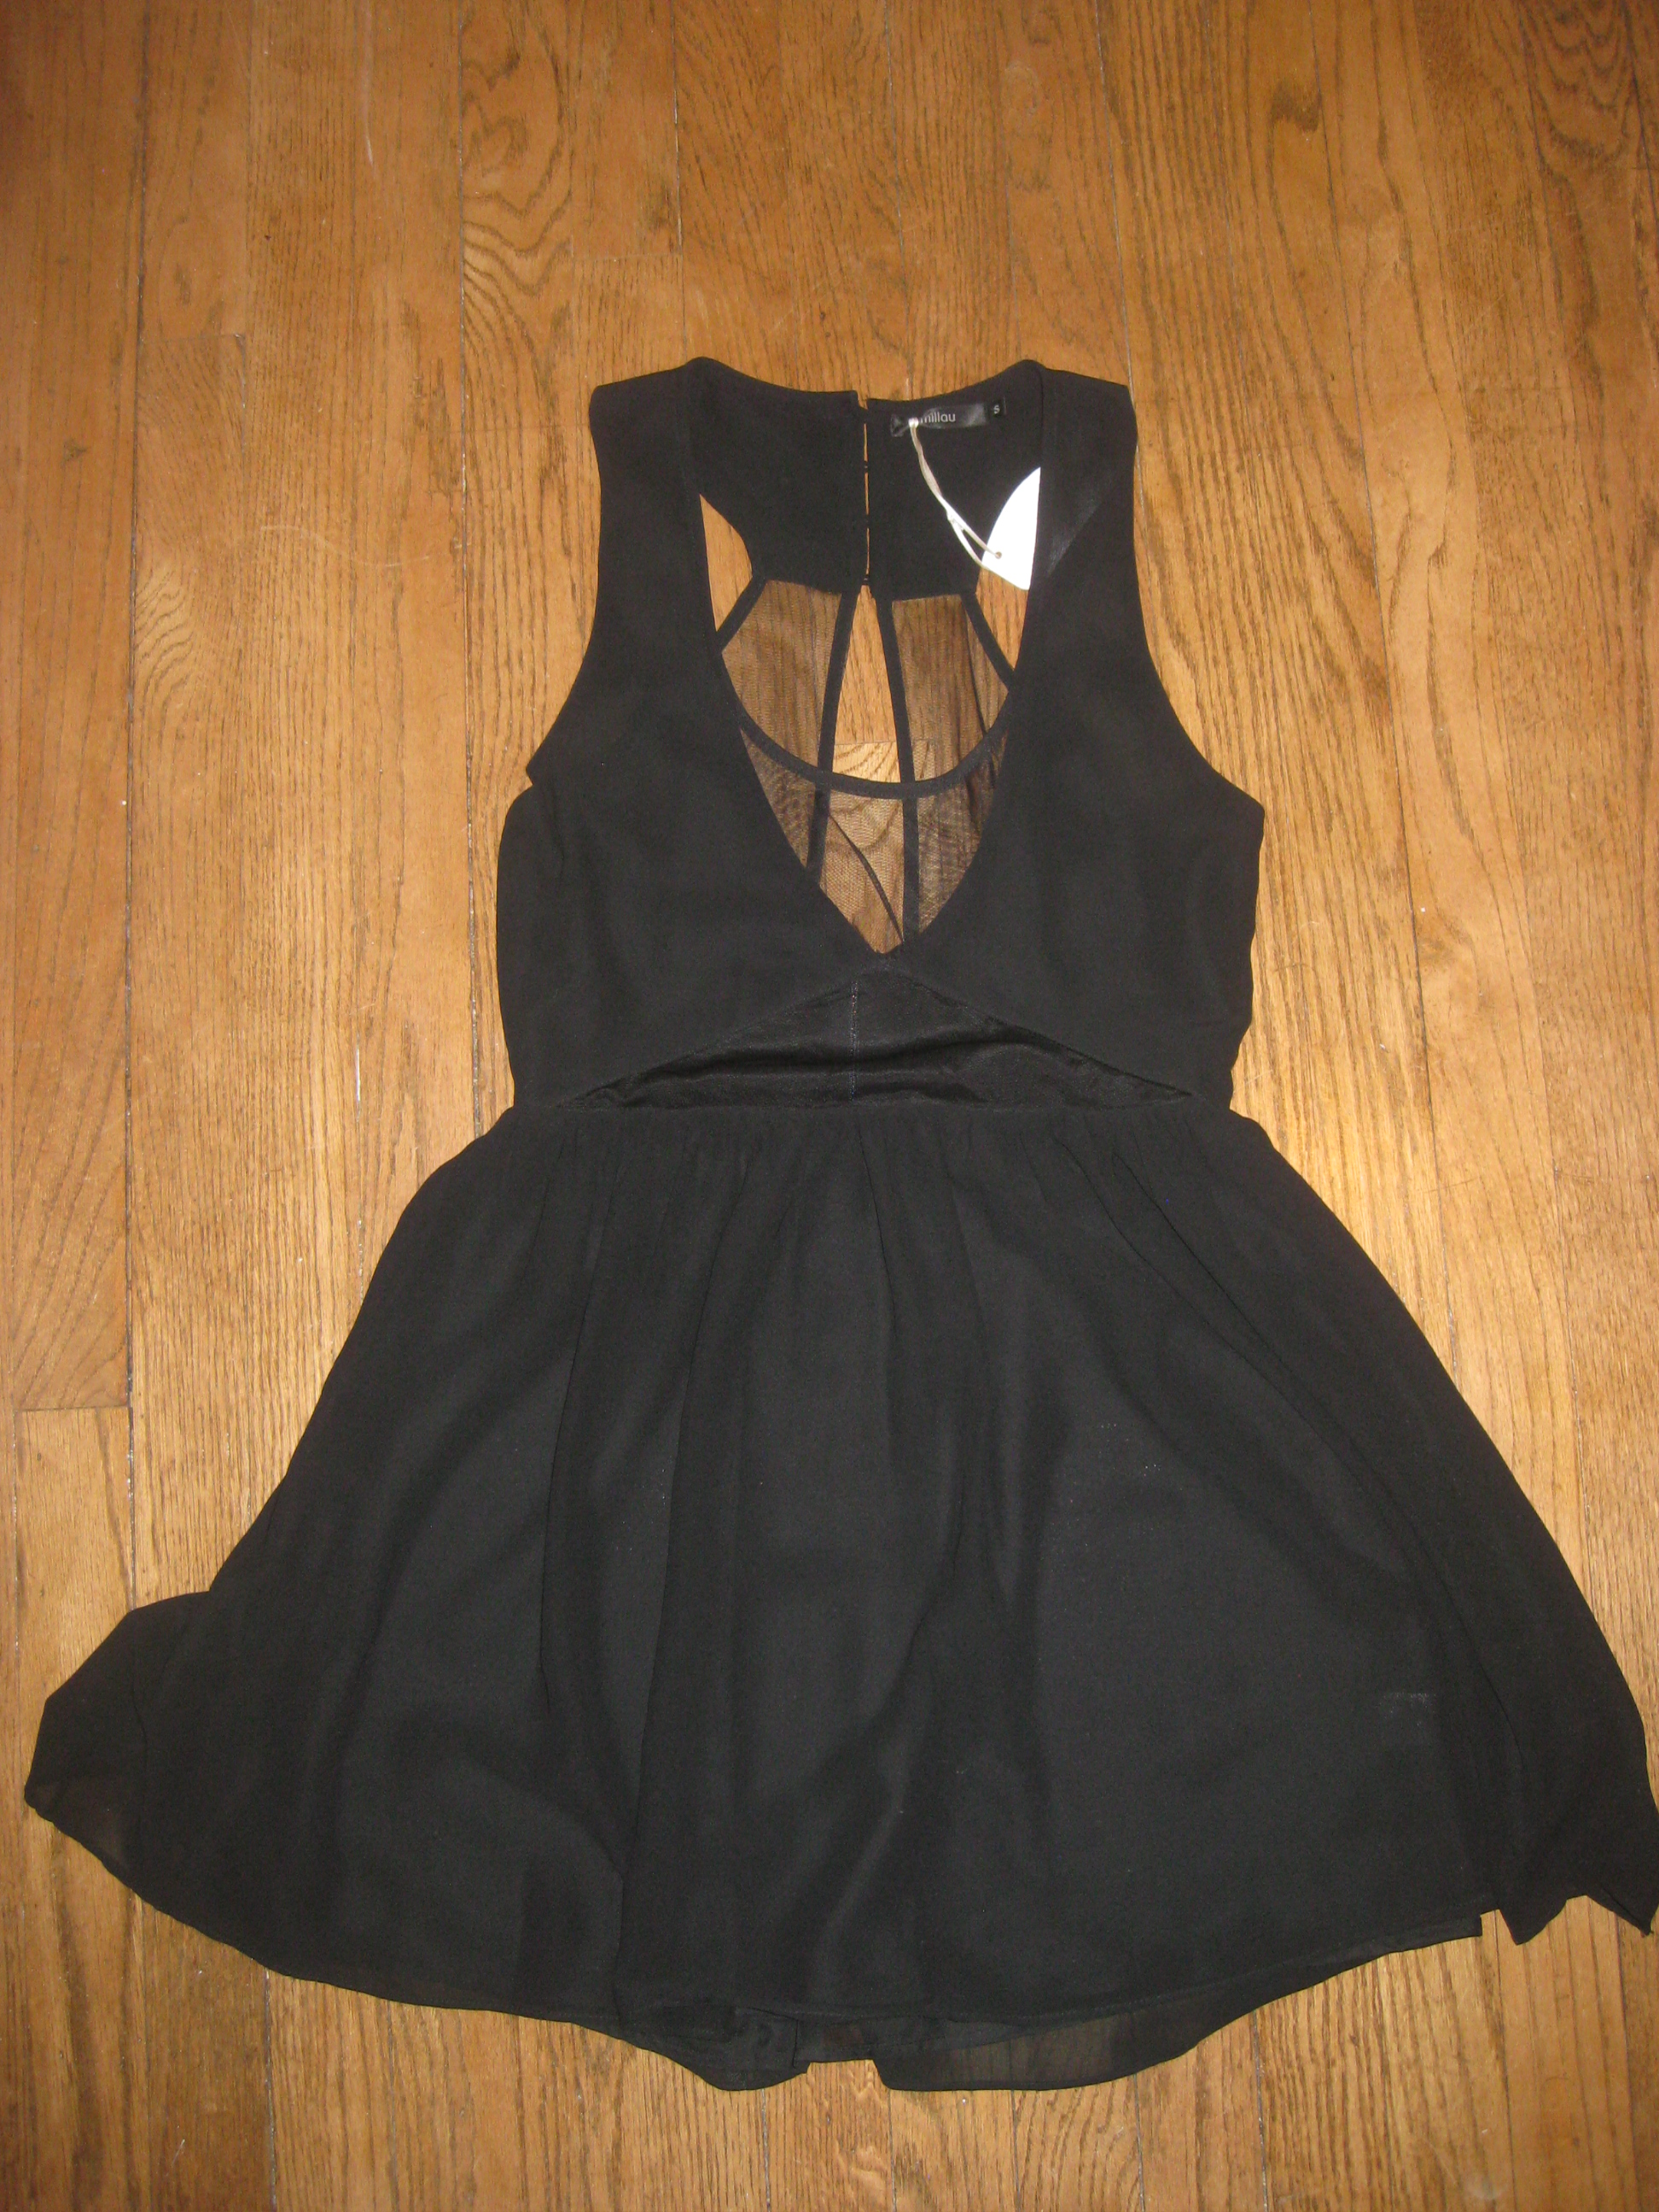 Black sheer cut out skater dress size s from nightmere clothing on storenvy